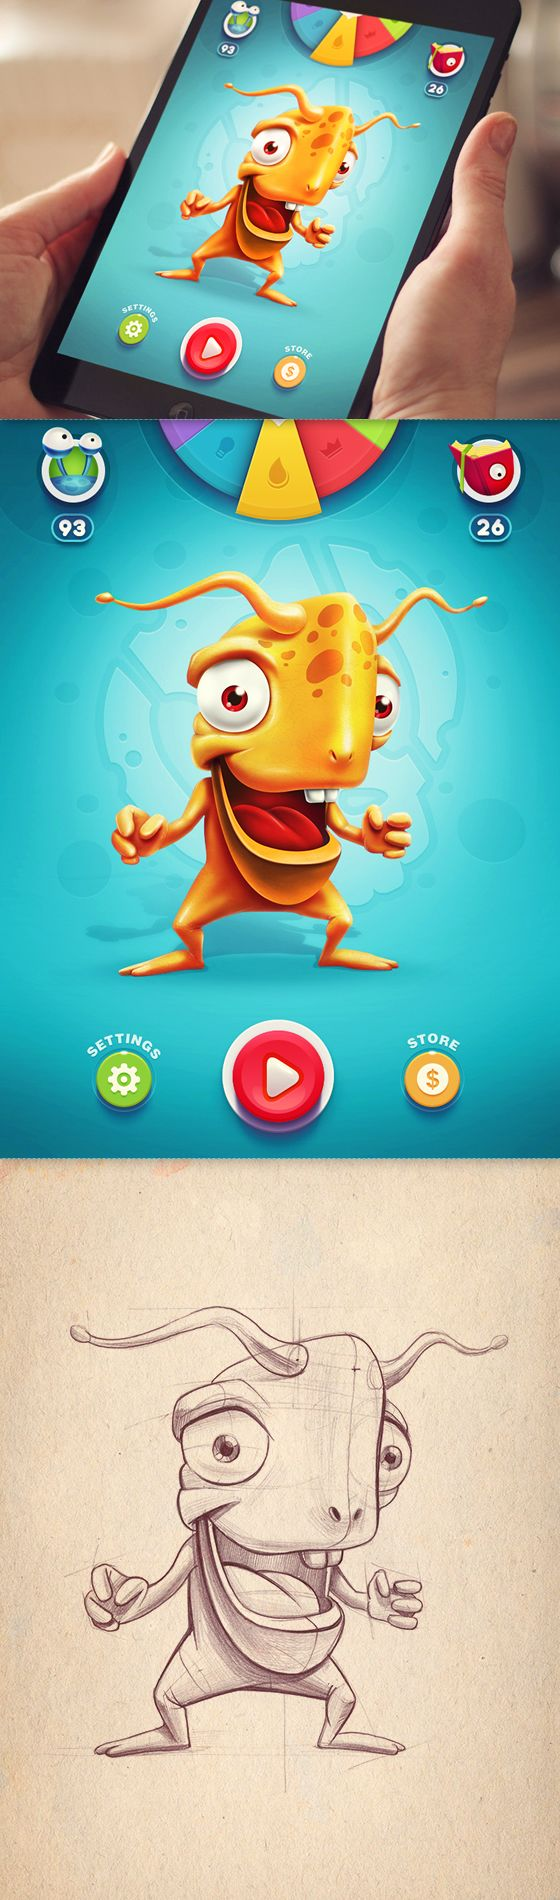 Vaganzaa iOS Game from Mike | Creative Mints